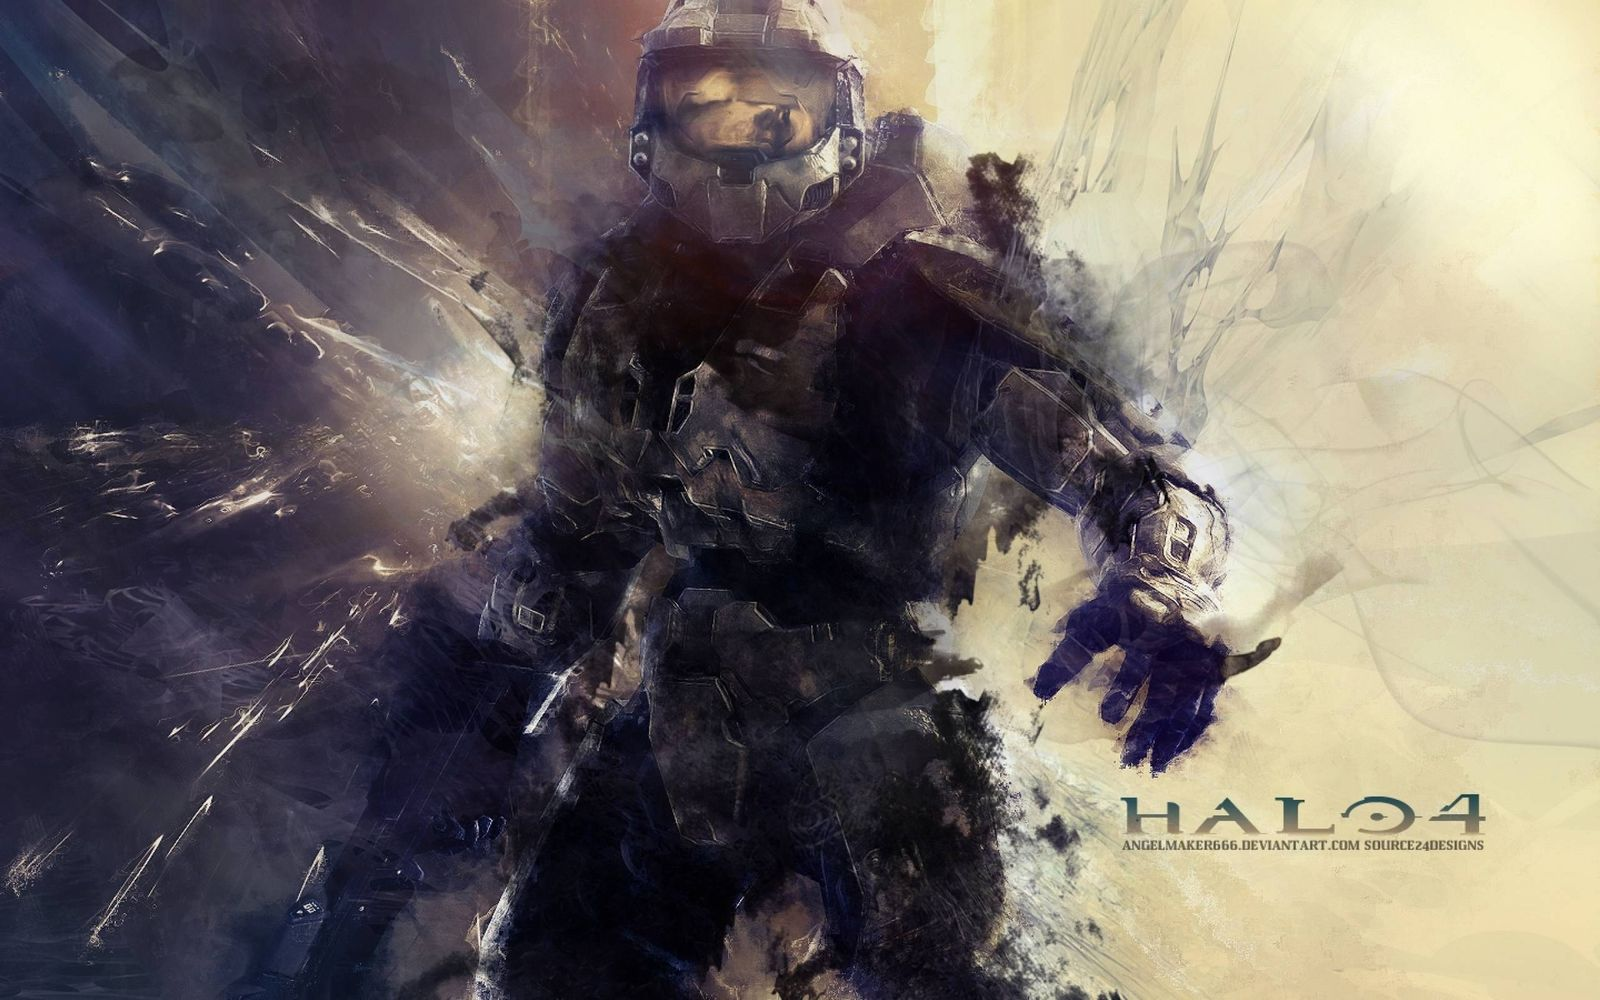 Halo abstract Wallpaper